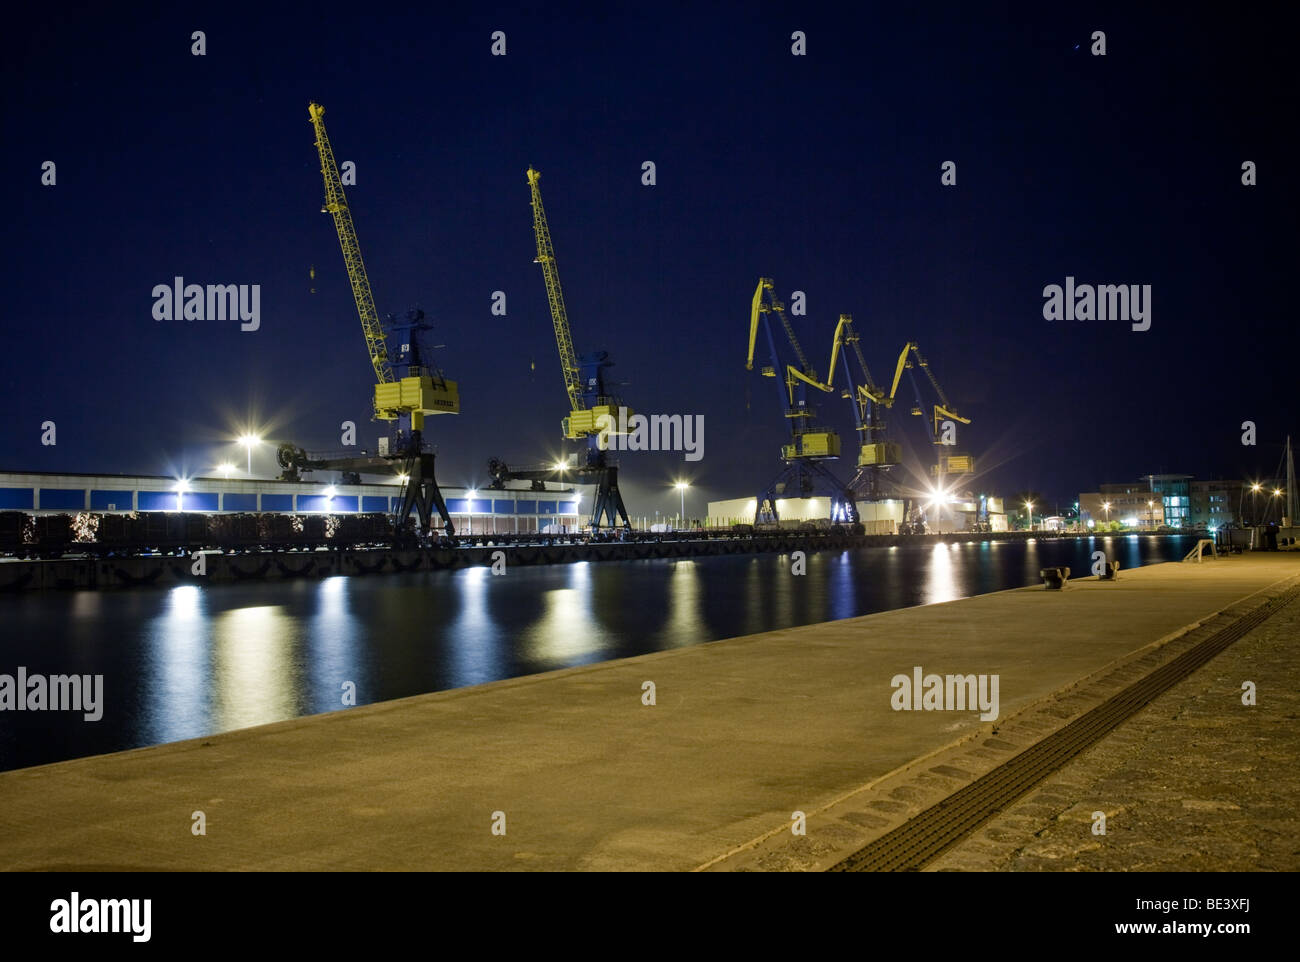 Cranes in the harbor of Wismar, Germany, during Blue hour - Stock Image